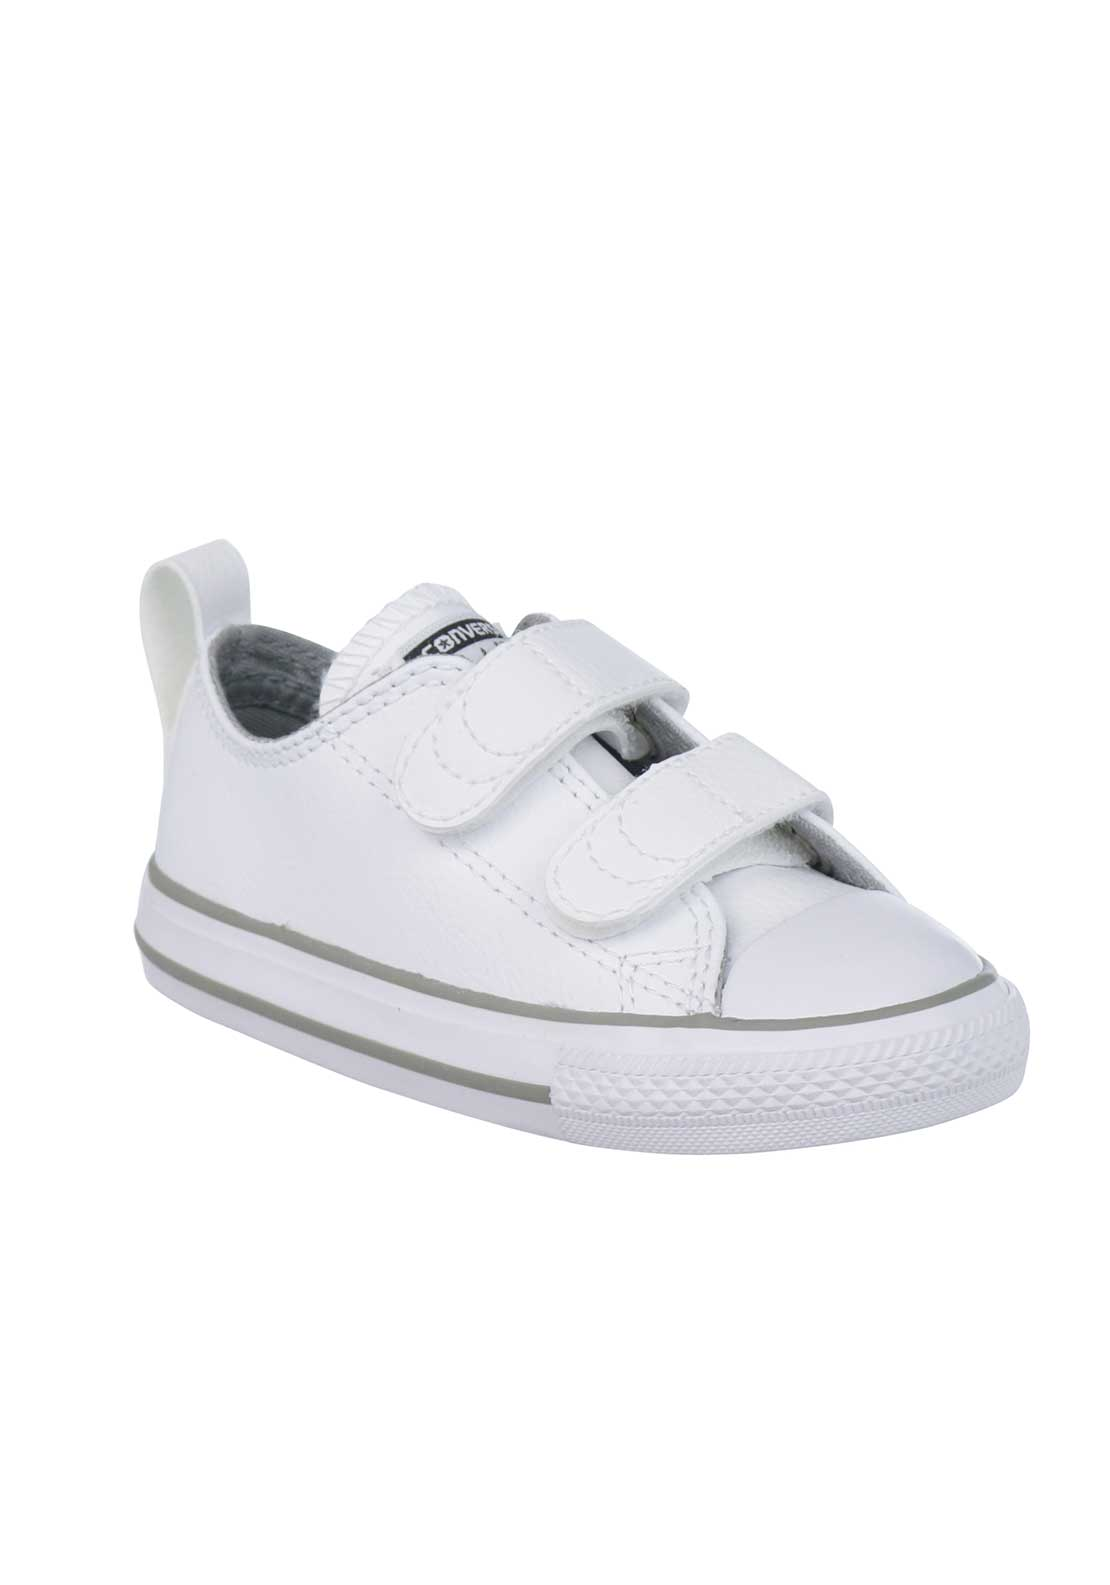 Converse Baby All Star Velcro Leather Trainers, White